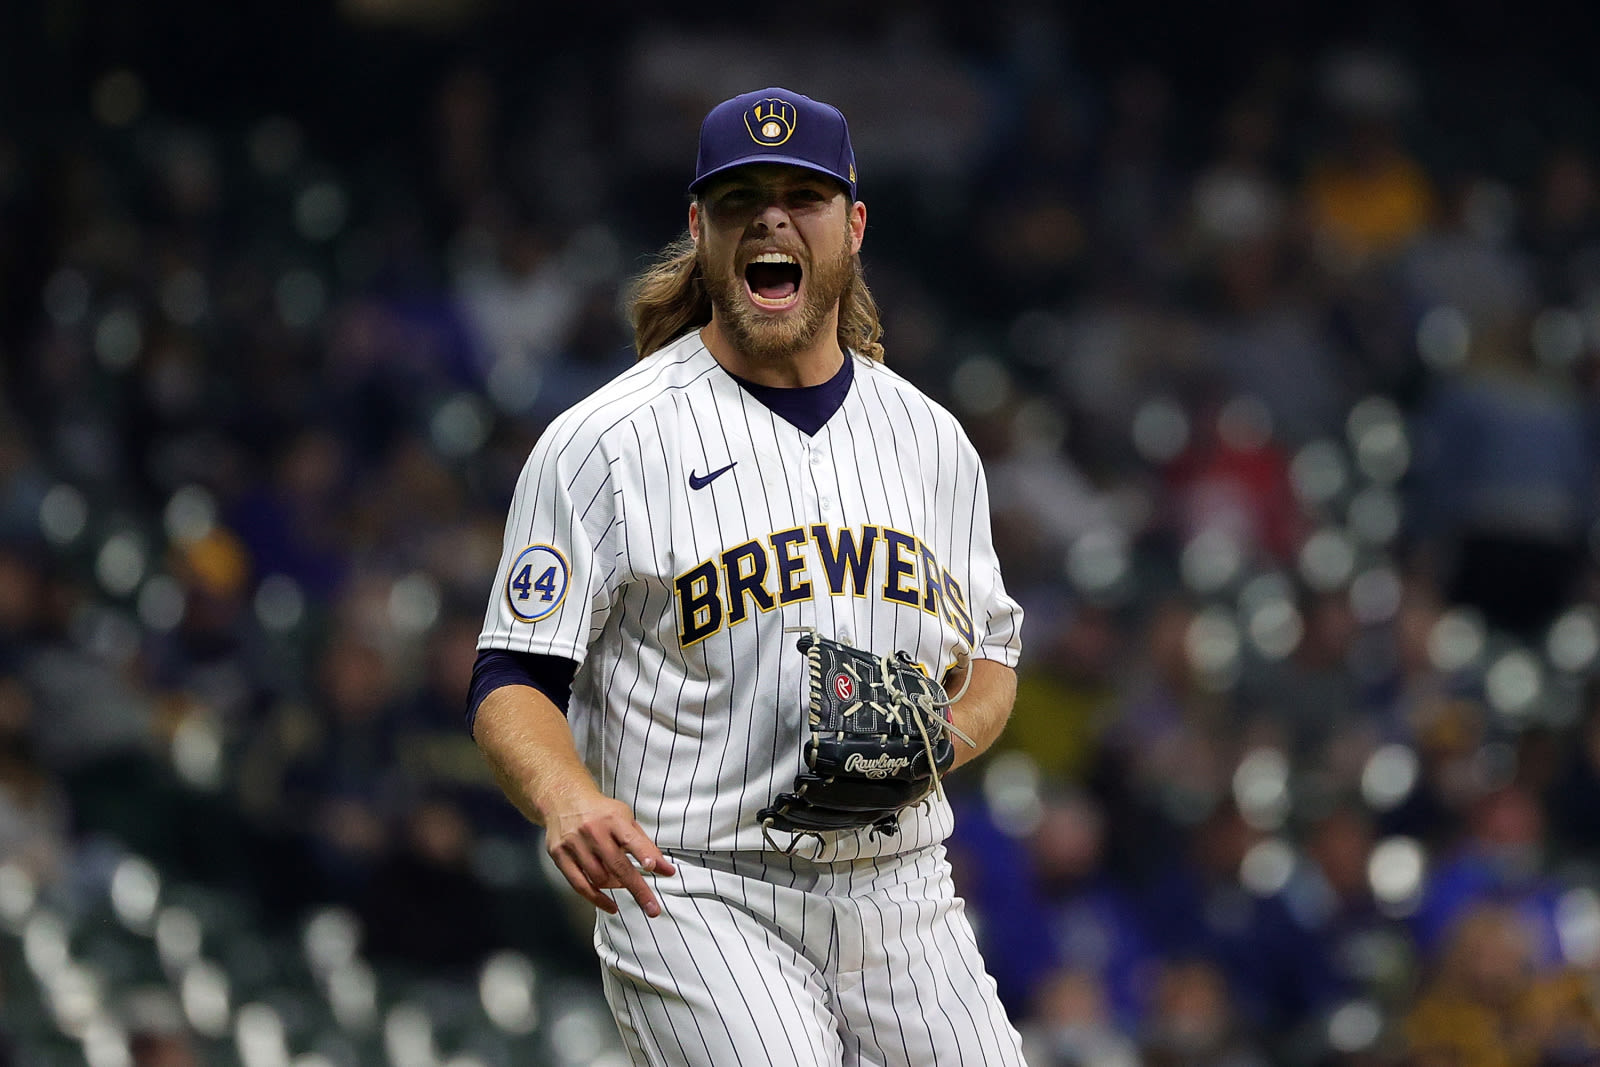 Brewers: The Value Of A Homegrown Starting Rotation